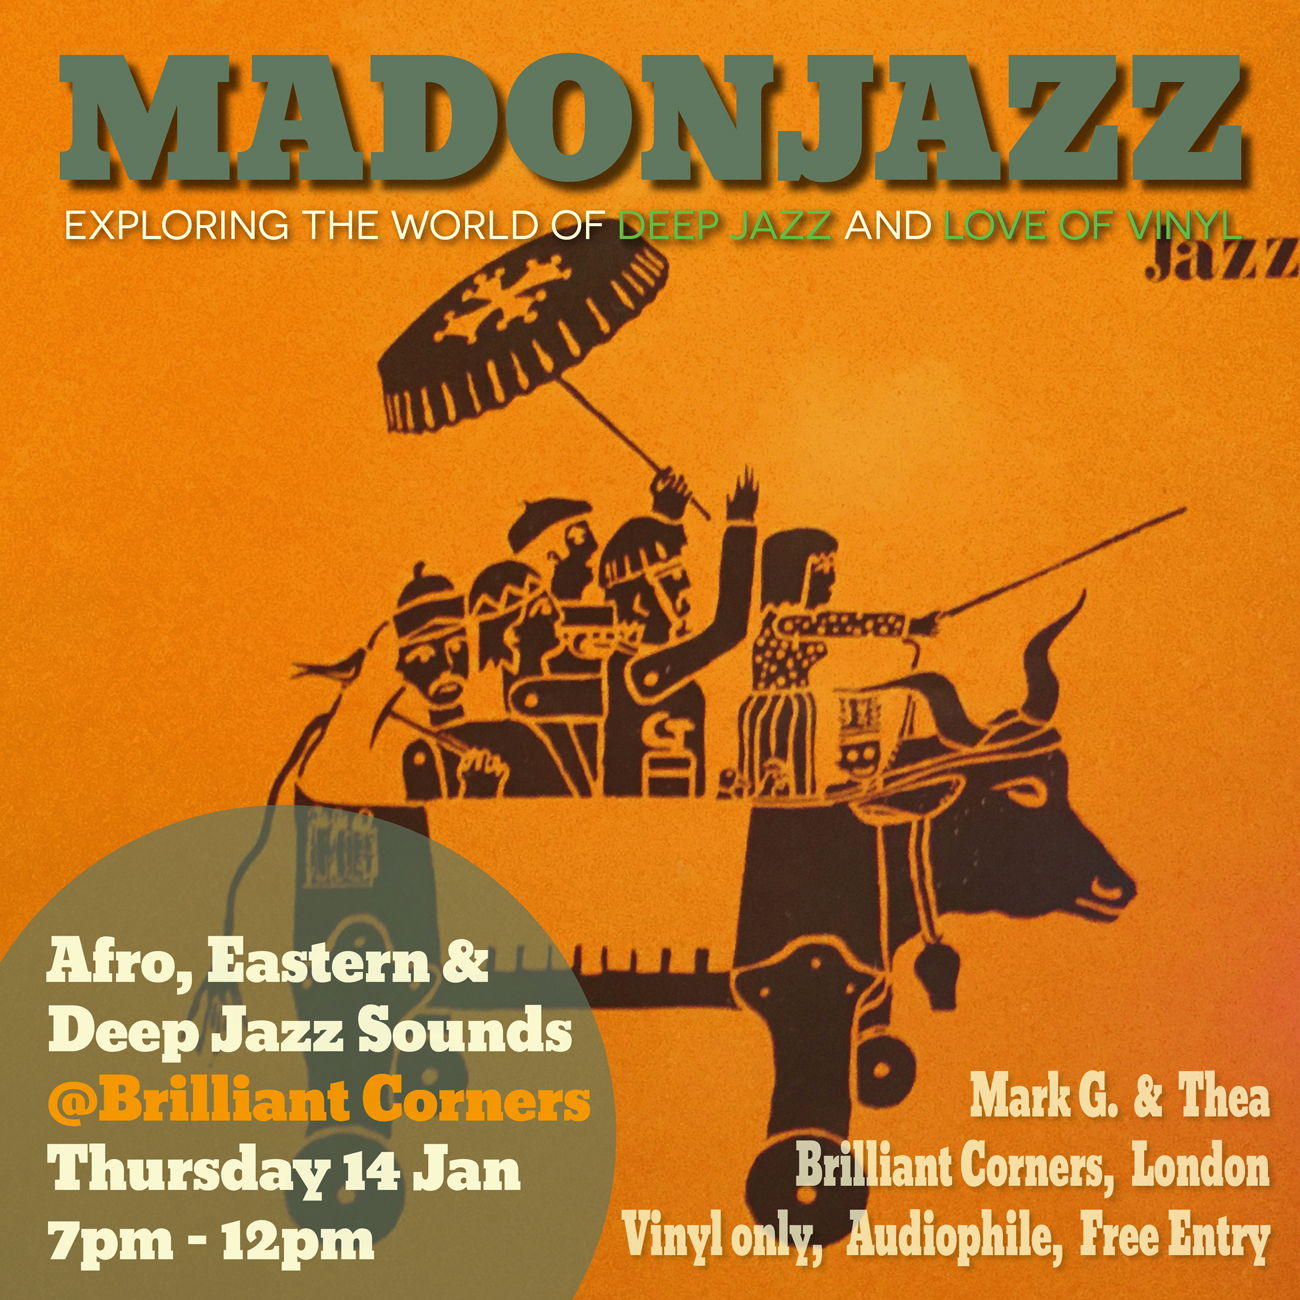 MADONJAZZ @Brilliant Corners, London 14JAN16 (Pt 2)